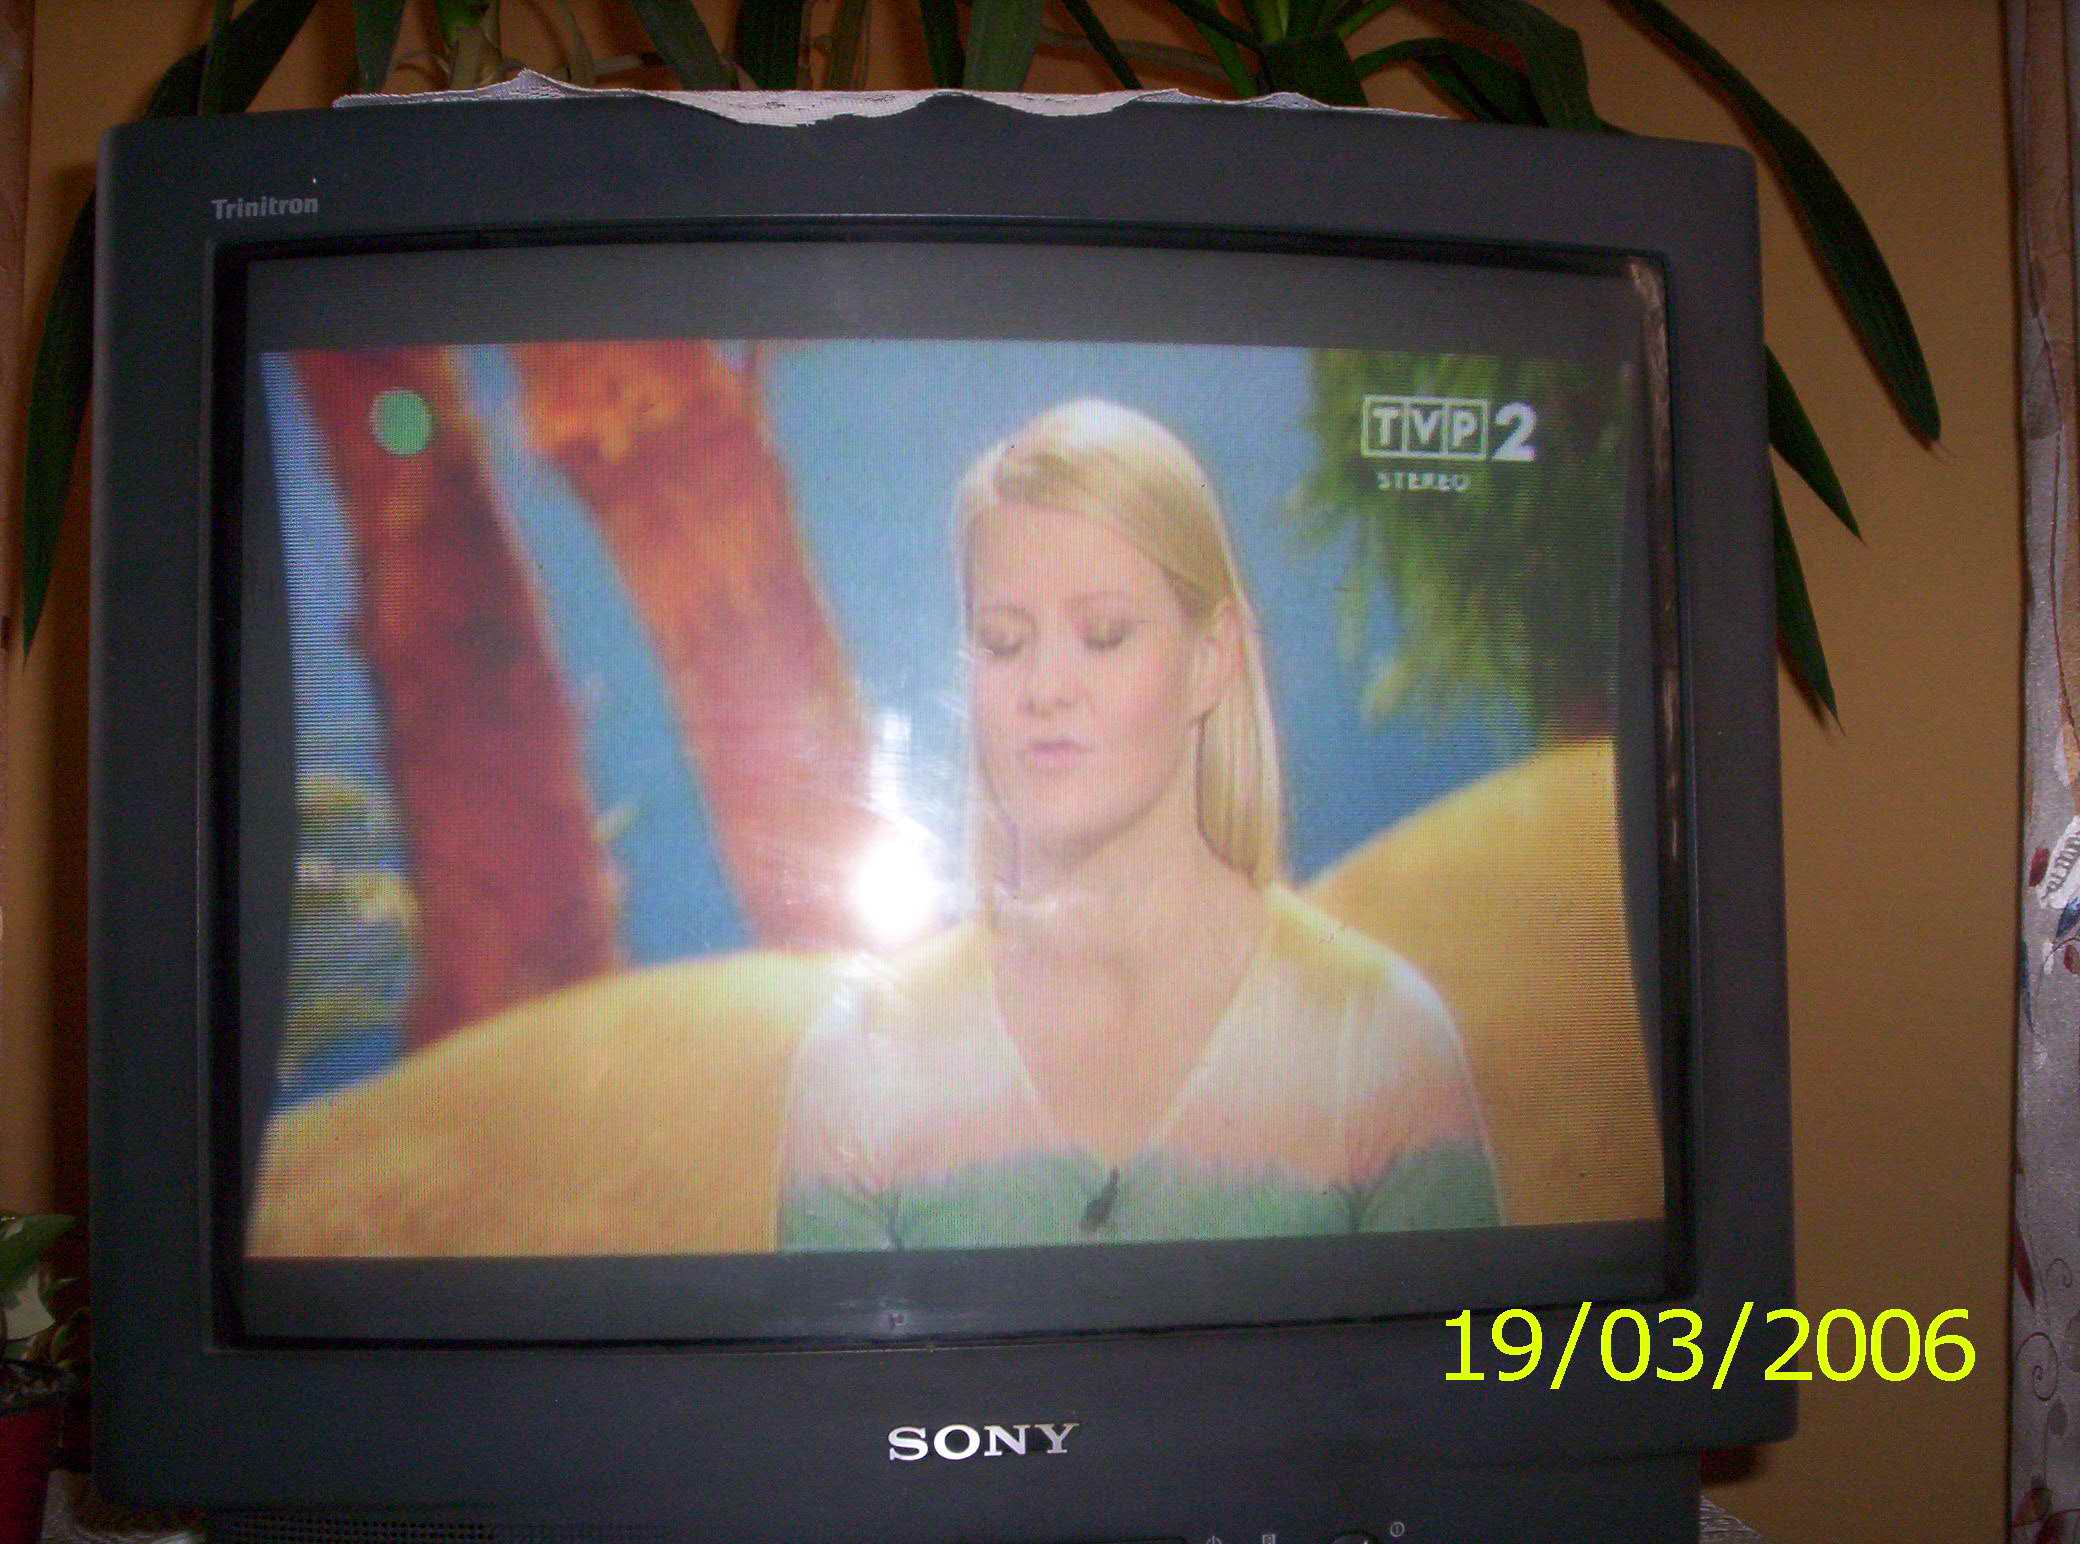 TV Sony KV-M2171K - obraz zw�ony, wkl�s�y do �rodka.